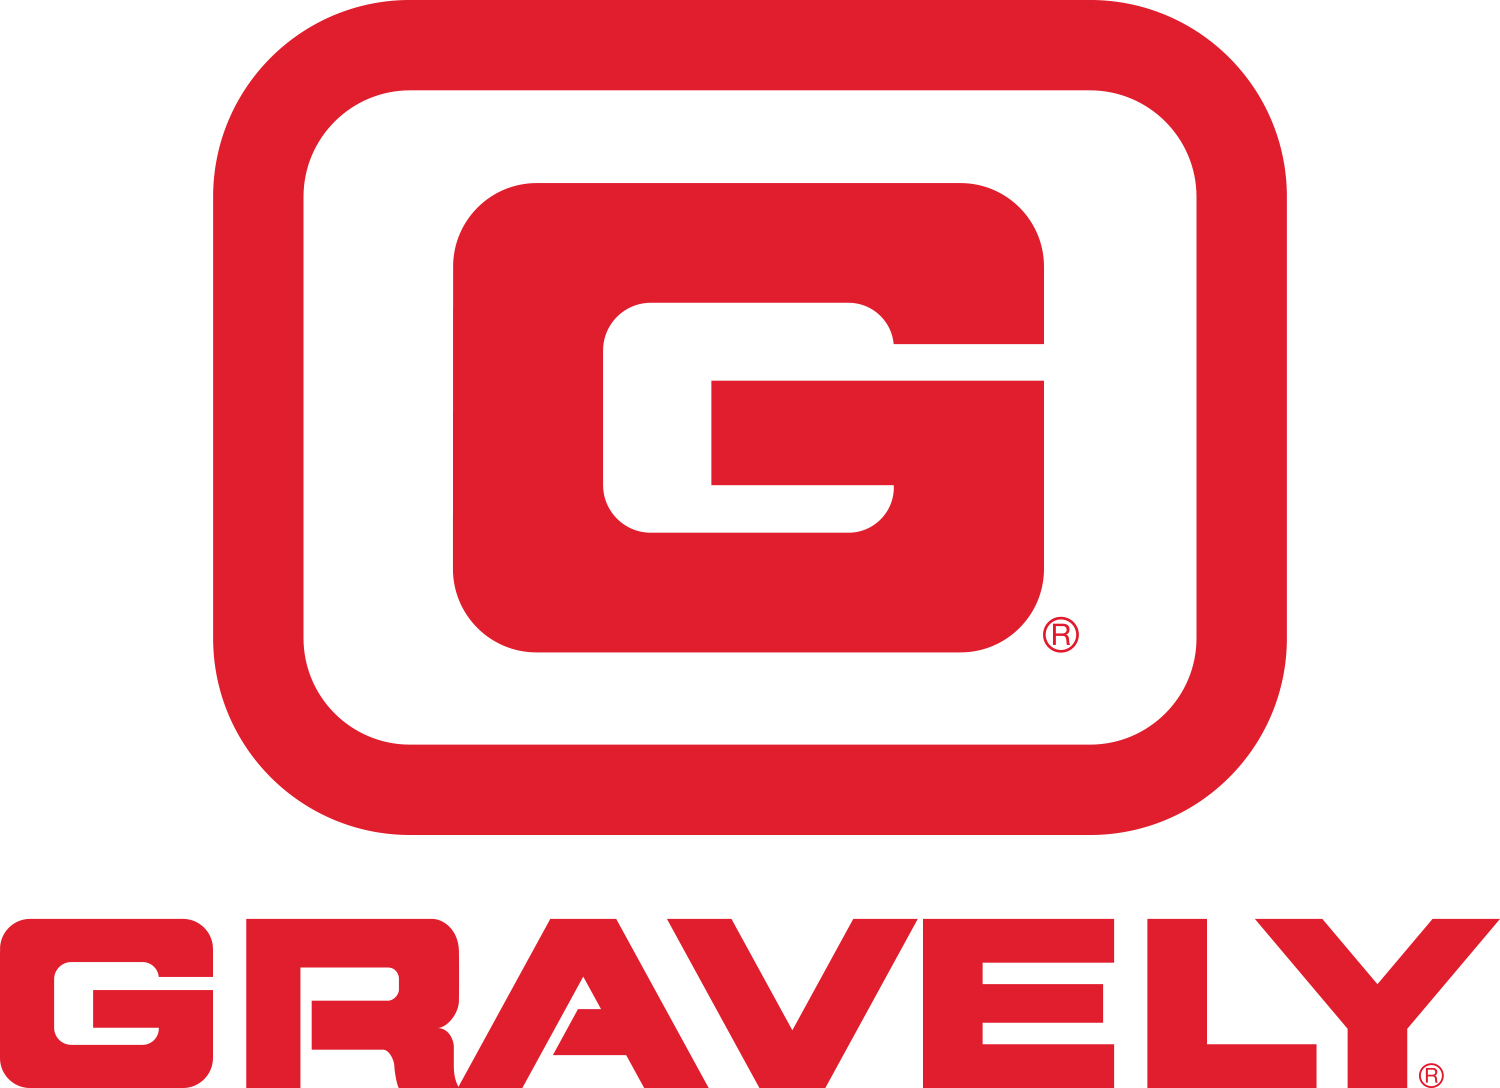 Link to Gravely website